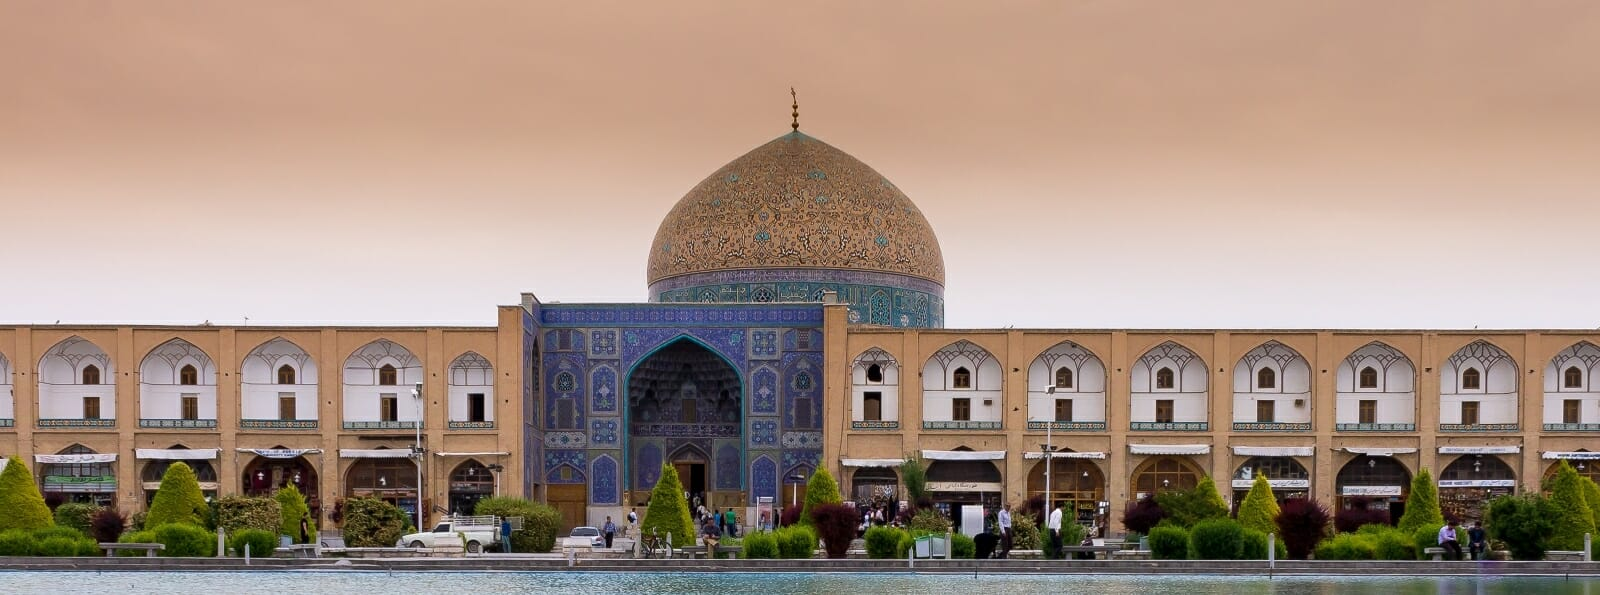 Sheikh Lotfollah Mosque Isfahan - Iran Tours Highlight